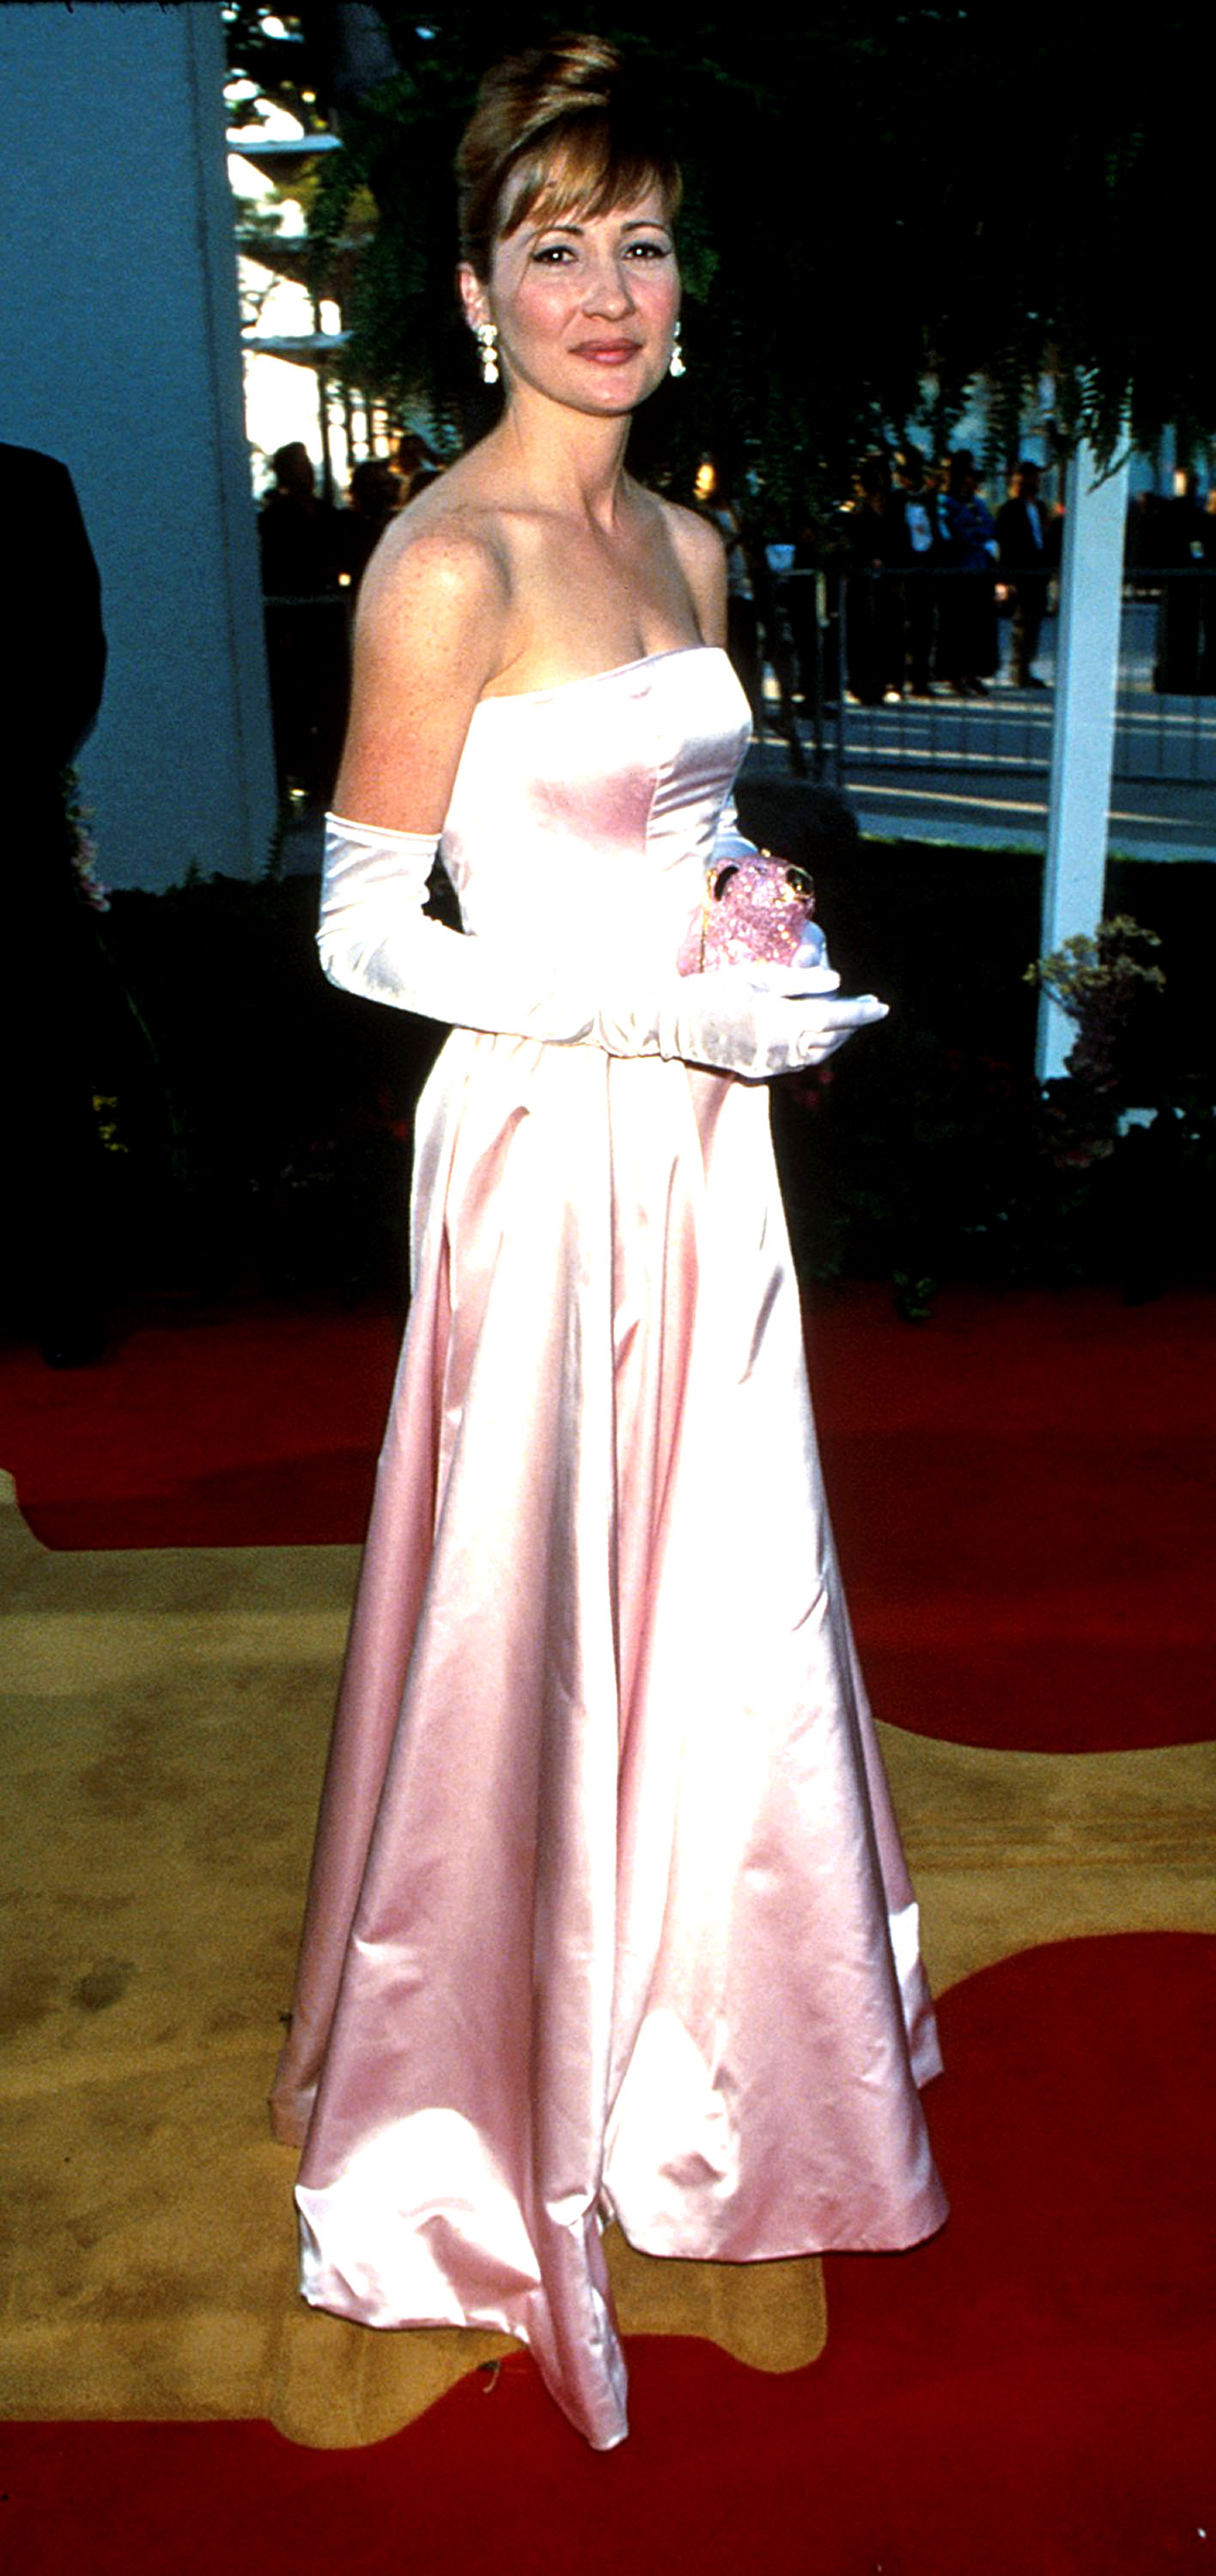 Christine Cavanaugh during The 68th Annual Academy Awards in 1996 at Dorothy Chandler Pavilion in Los Angeles, Calif.